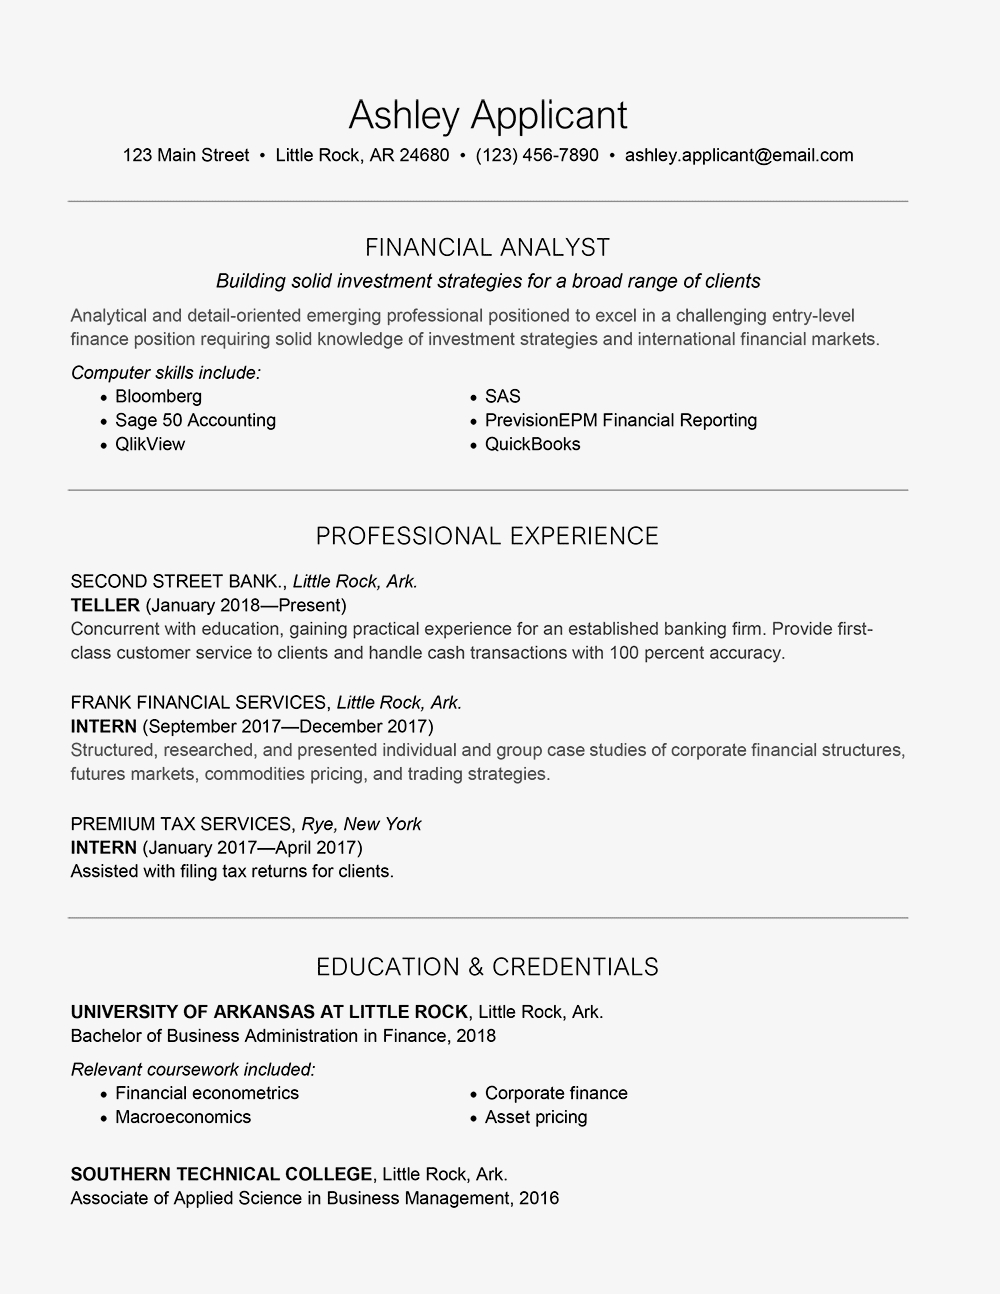 Entry Level Financial Analyst Resume - Entry Level Finance Cover Letter and Resume Samples